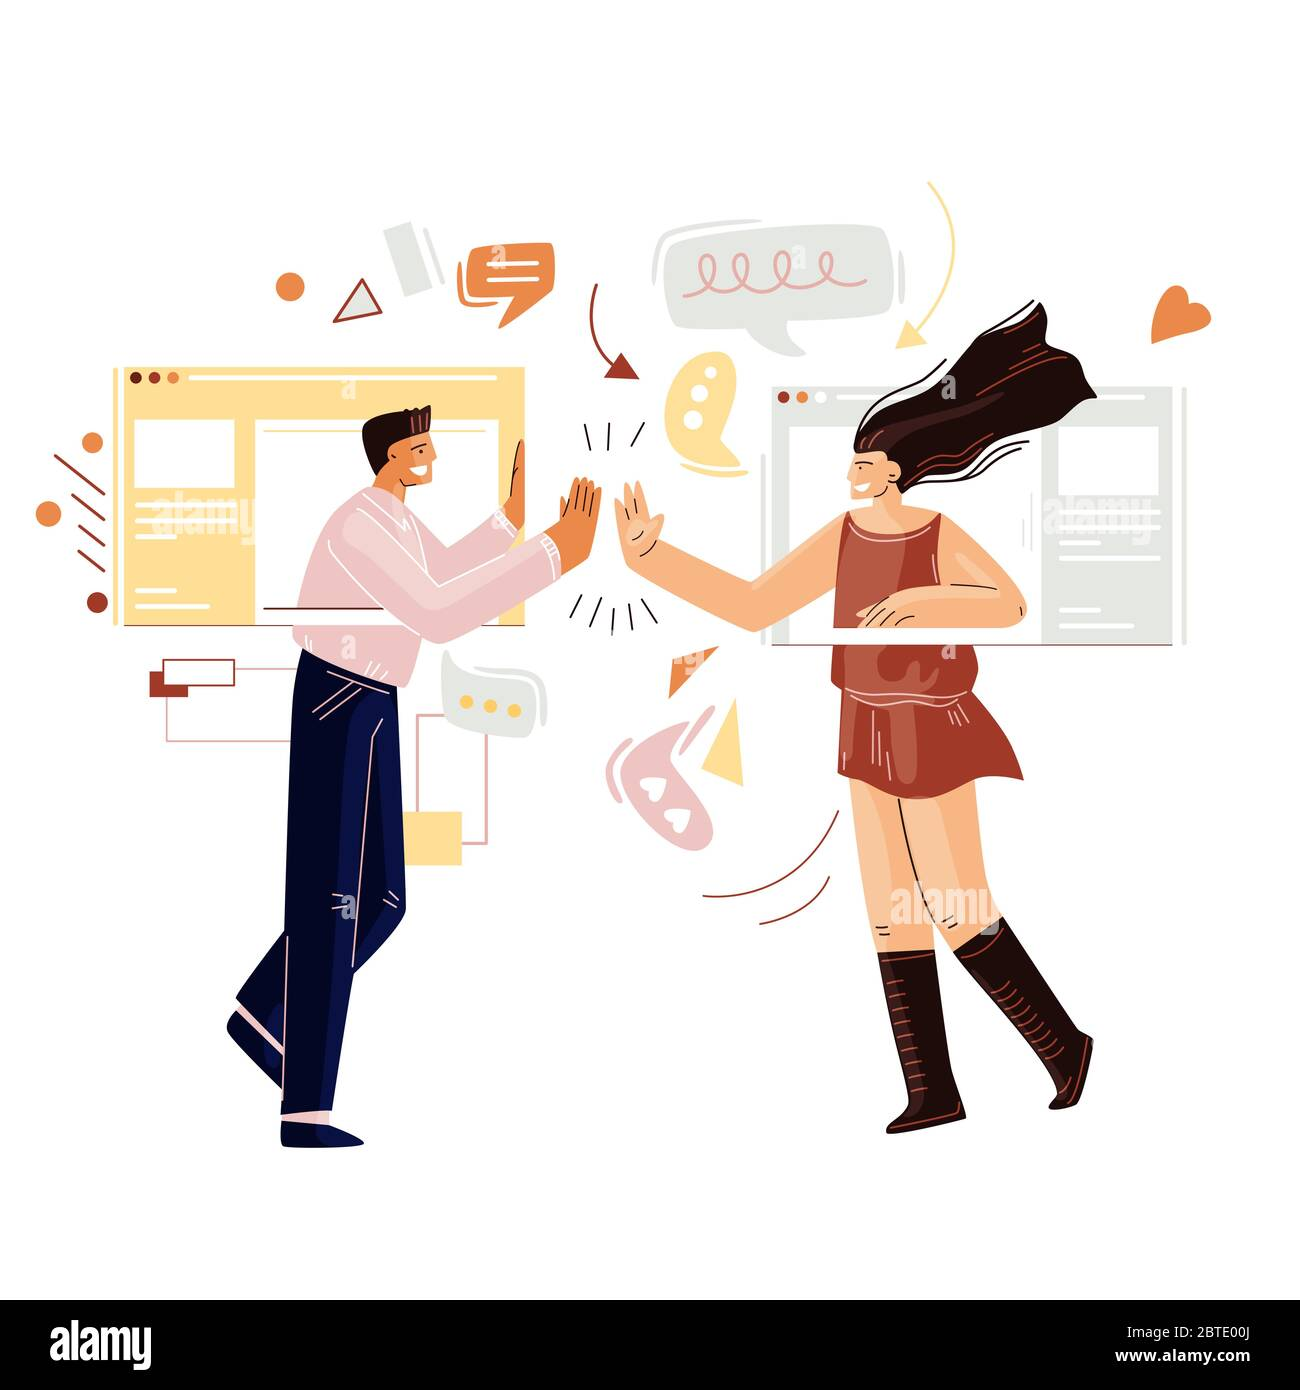 Man and woman chatting online, having remote video call with web internet interface, online messenger. Friends communicating online Stock Vector